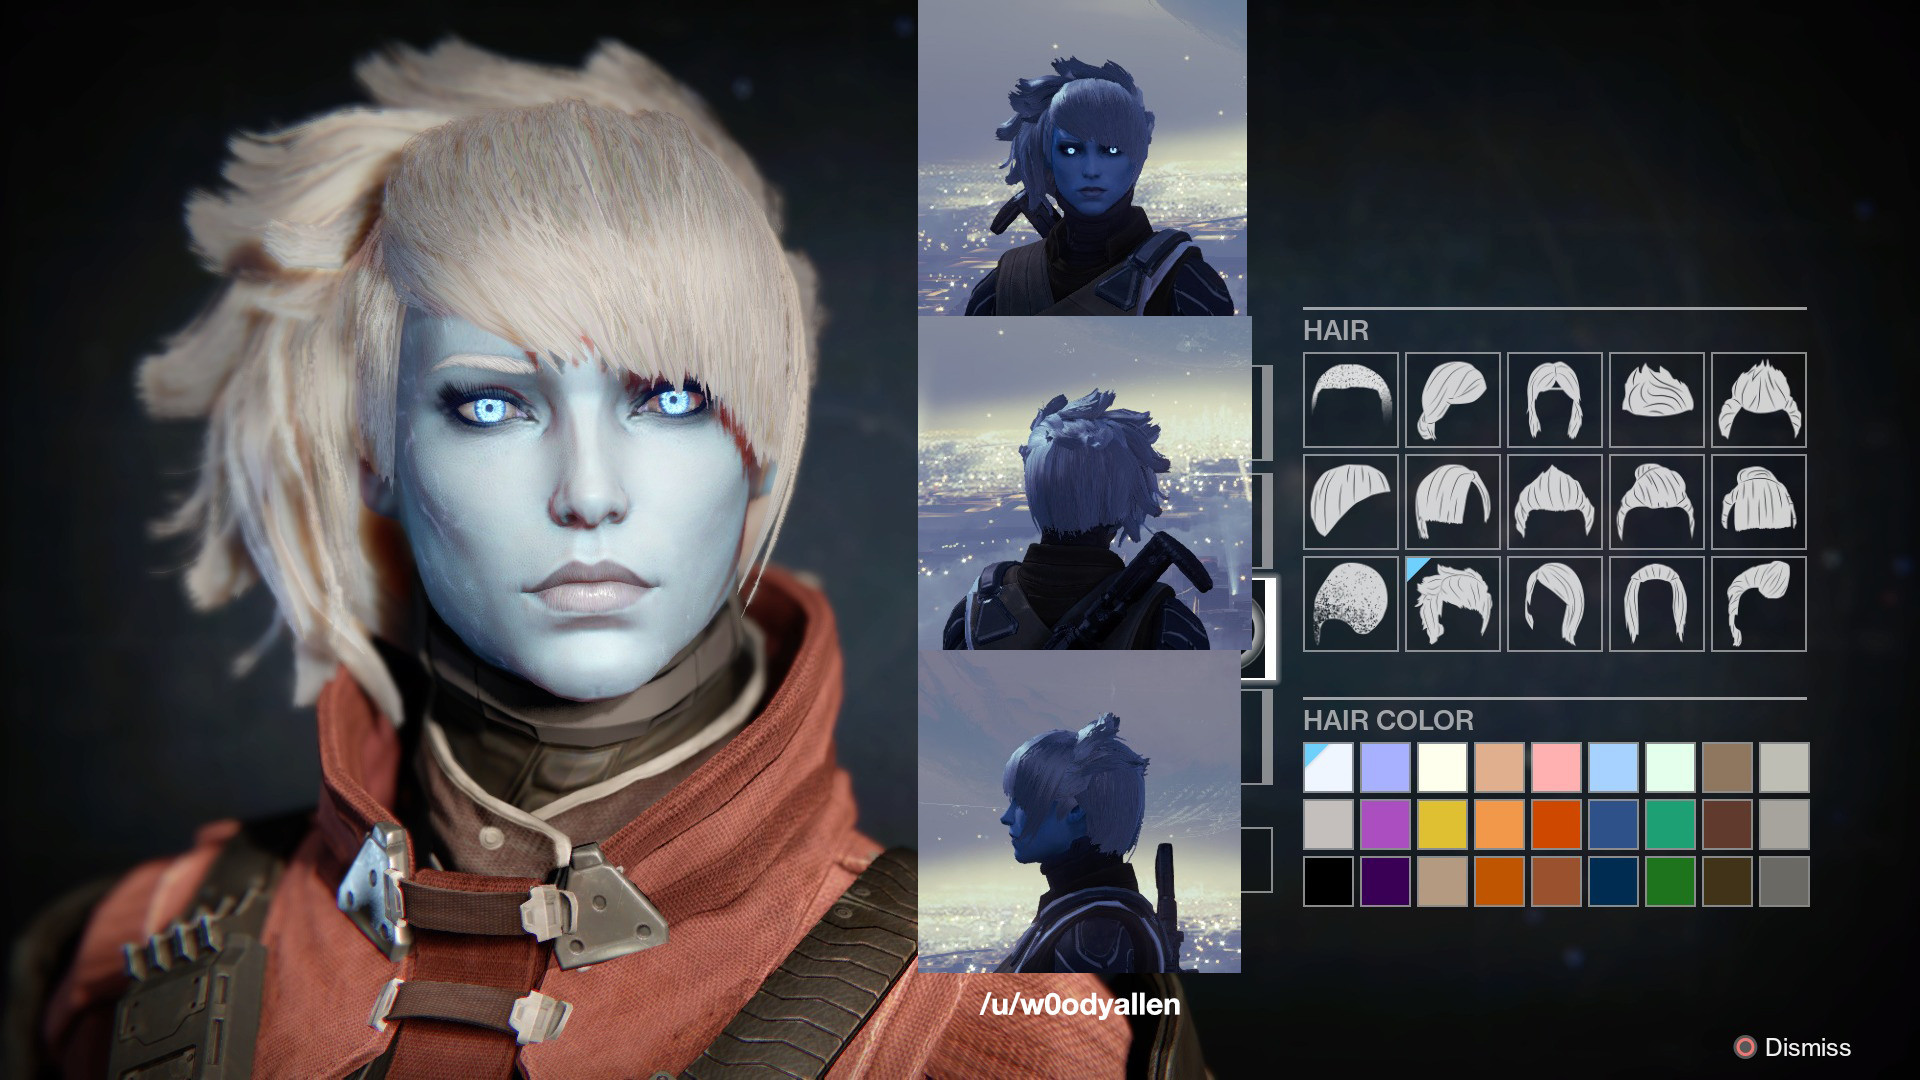 Destiny 2 Female Hairstyles  Destiny Awoken Female Hairstyles what your hair looks